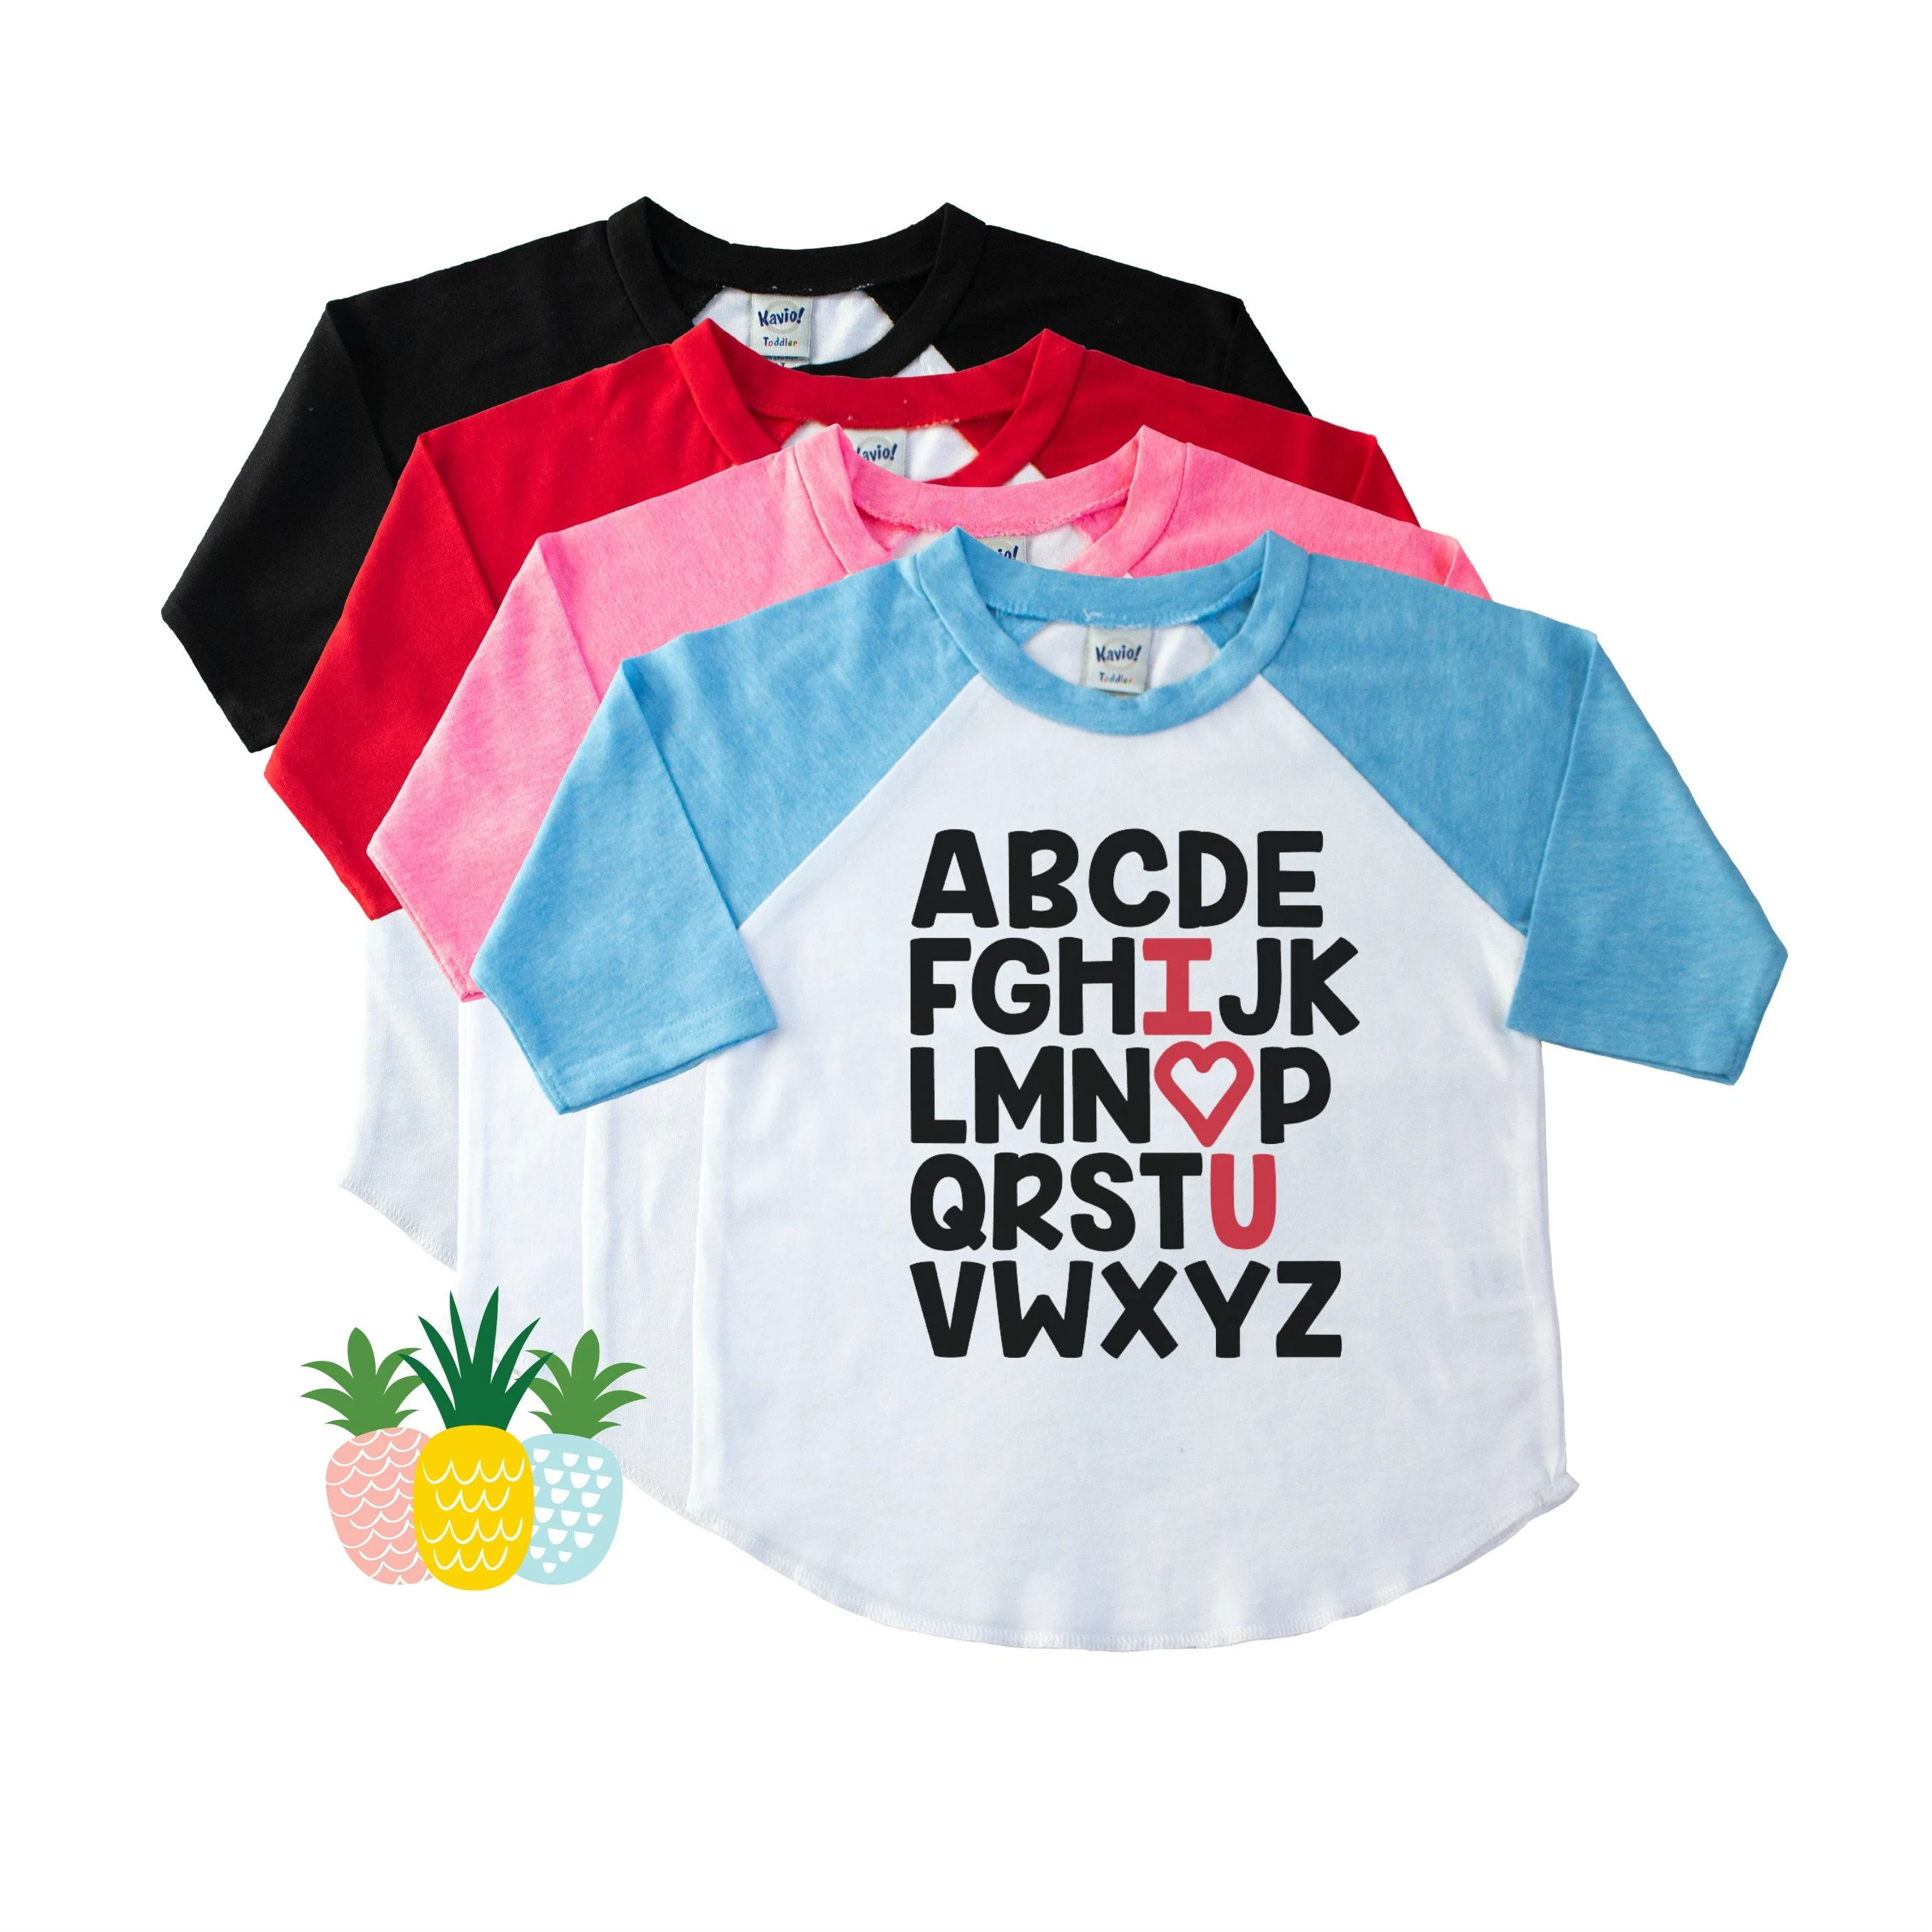 Preschool Shirt For Kids Kindergarten Shirt Alphabet Shirt